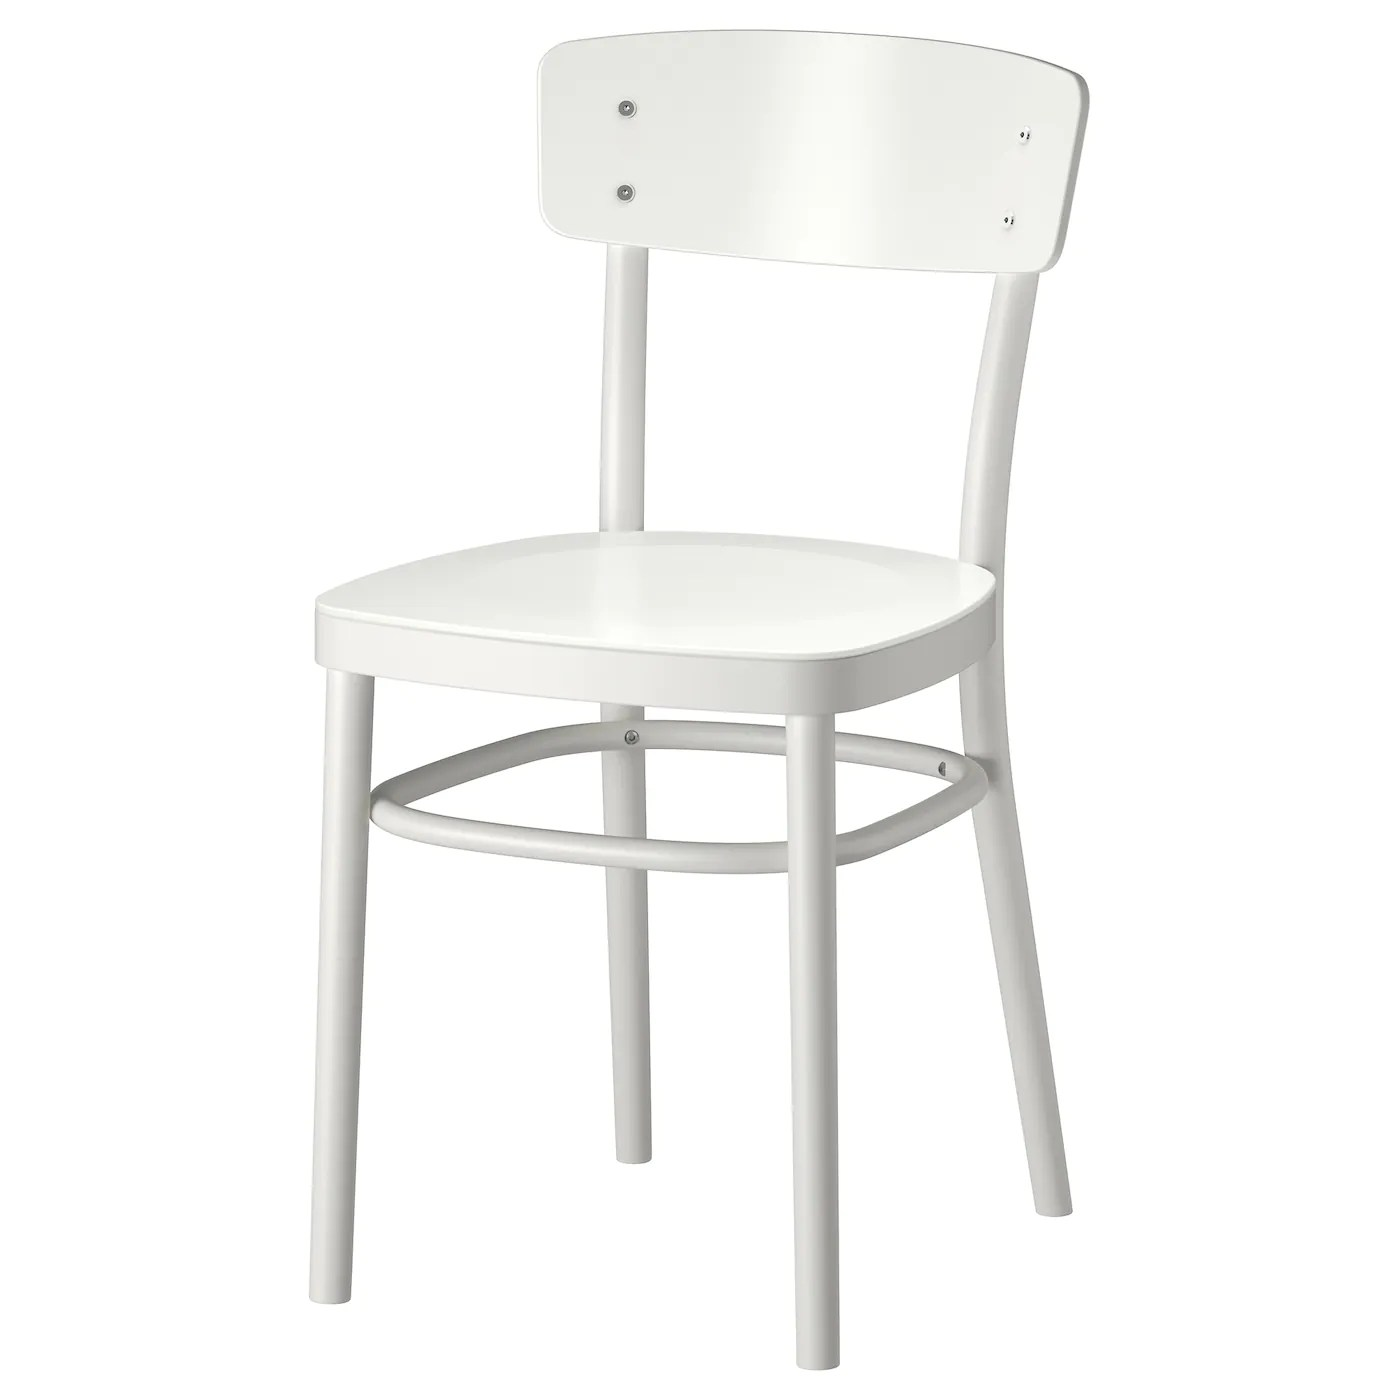 white chair ikea target eddie bauer high dining chairs and kitchen